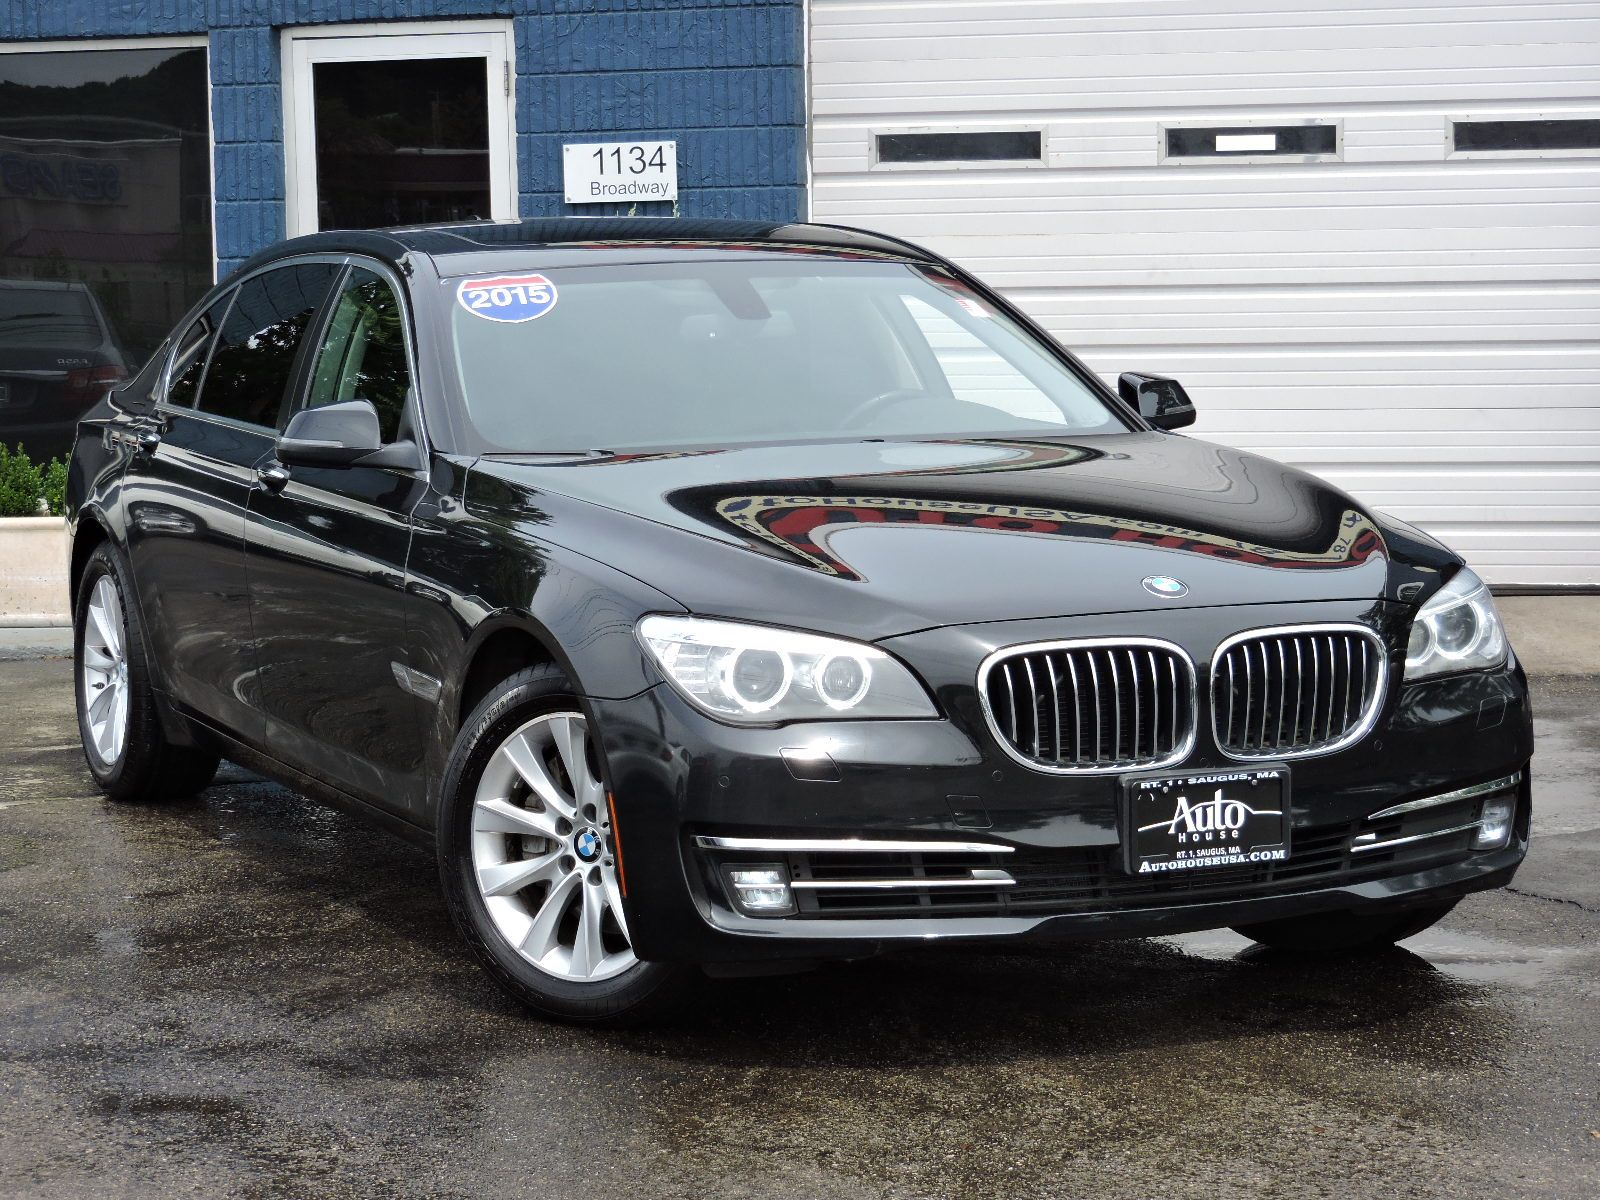 2015 BMW 740Li xDrive - All Wheel Drive - Navigation